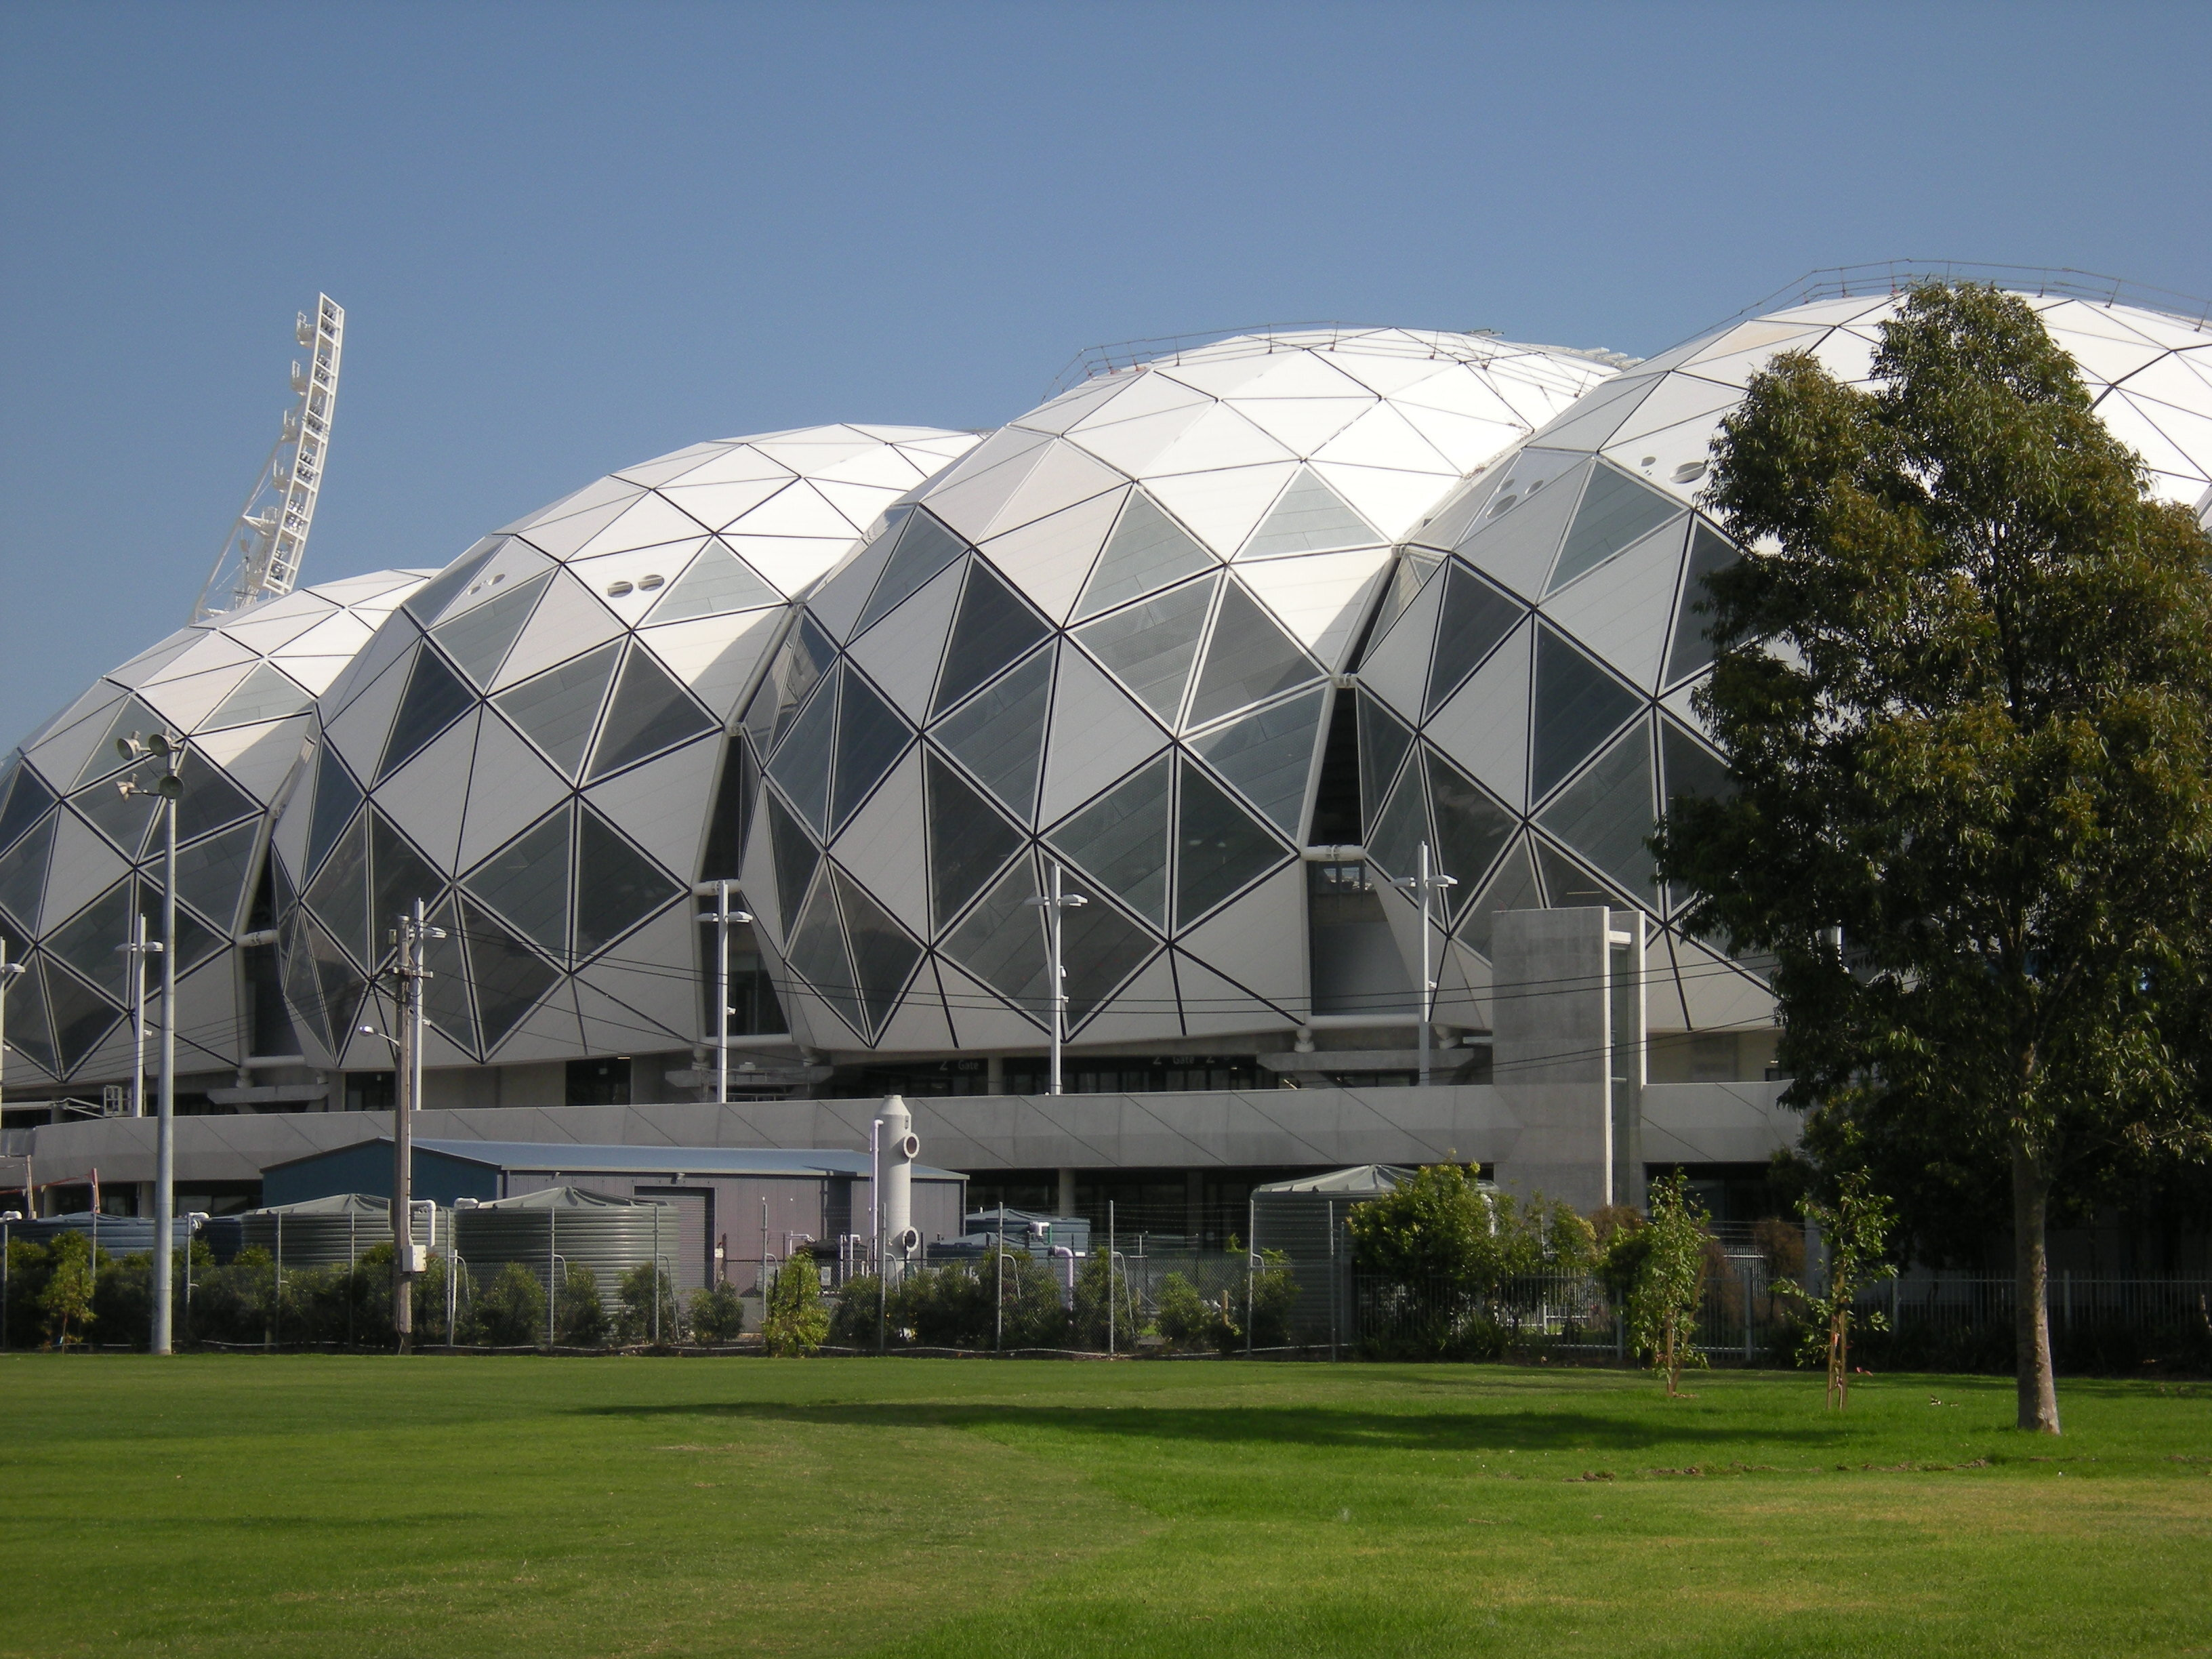 Melbourne Rectangular Stadium bioframe roof